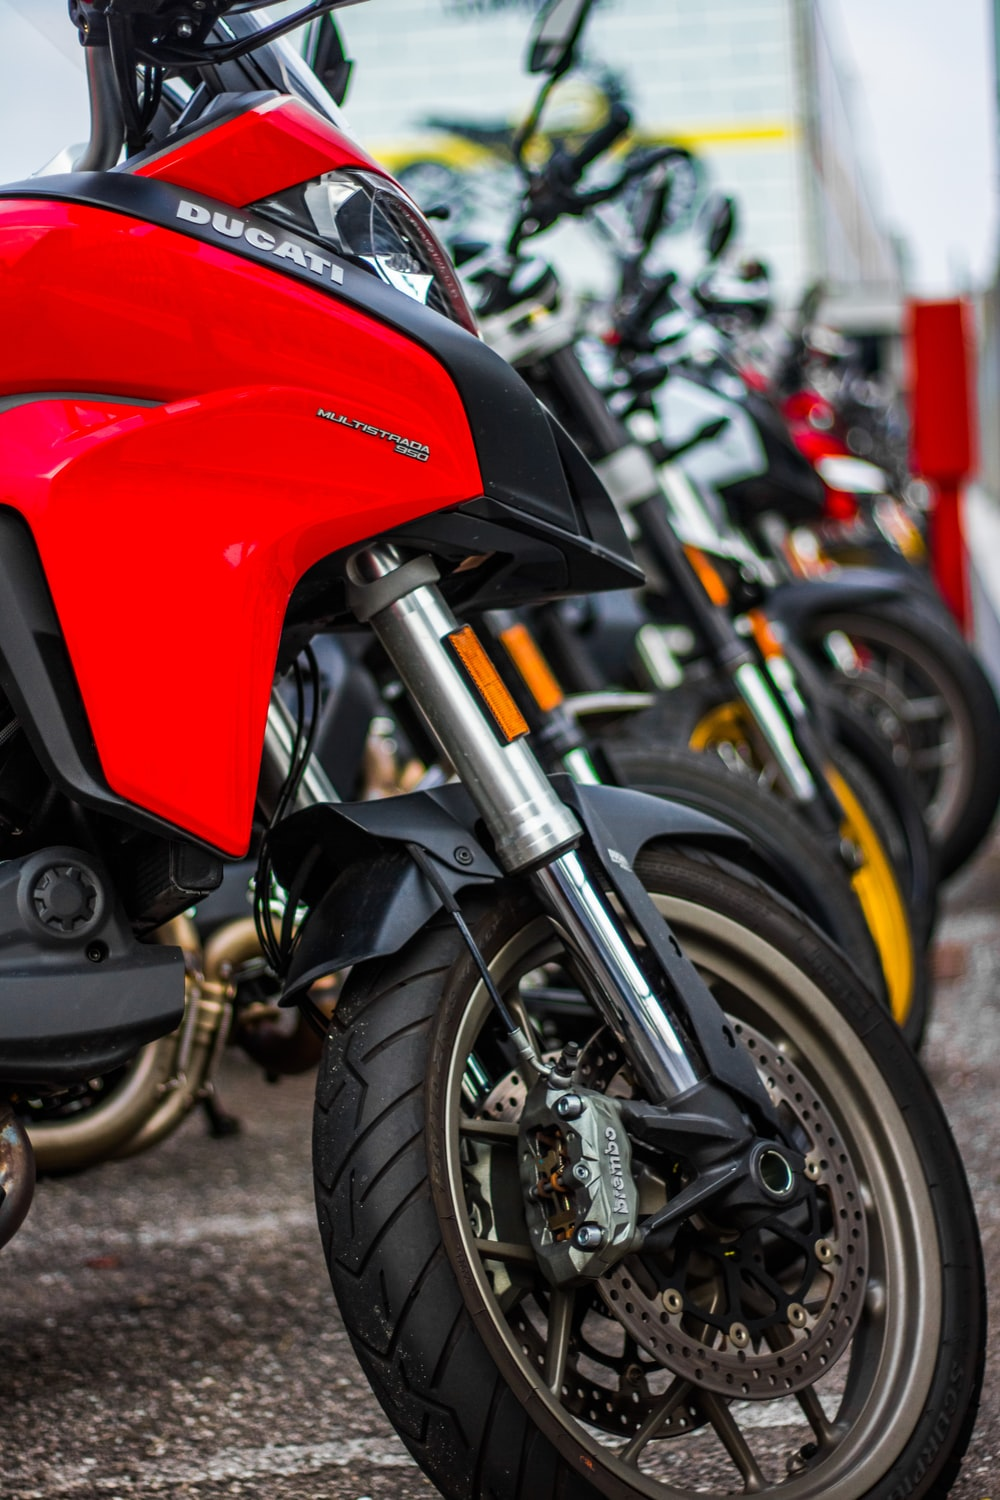 red and black motorcycle on road during daytime